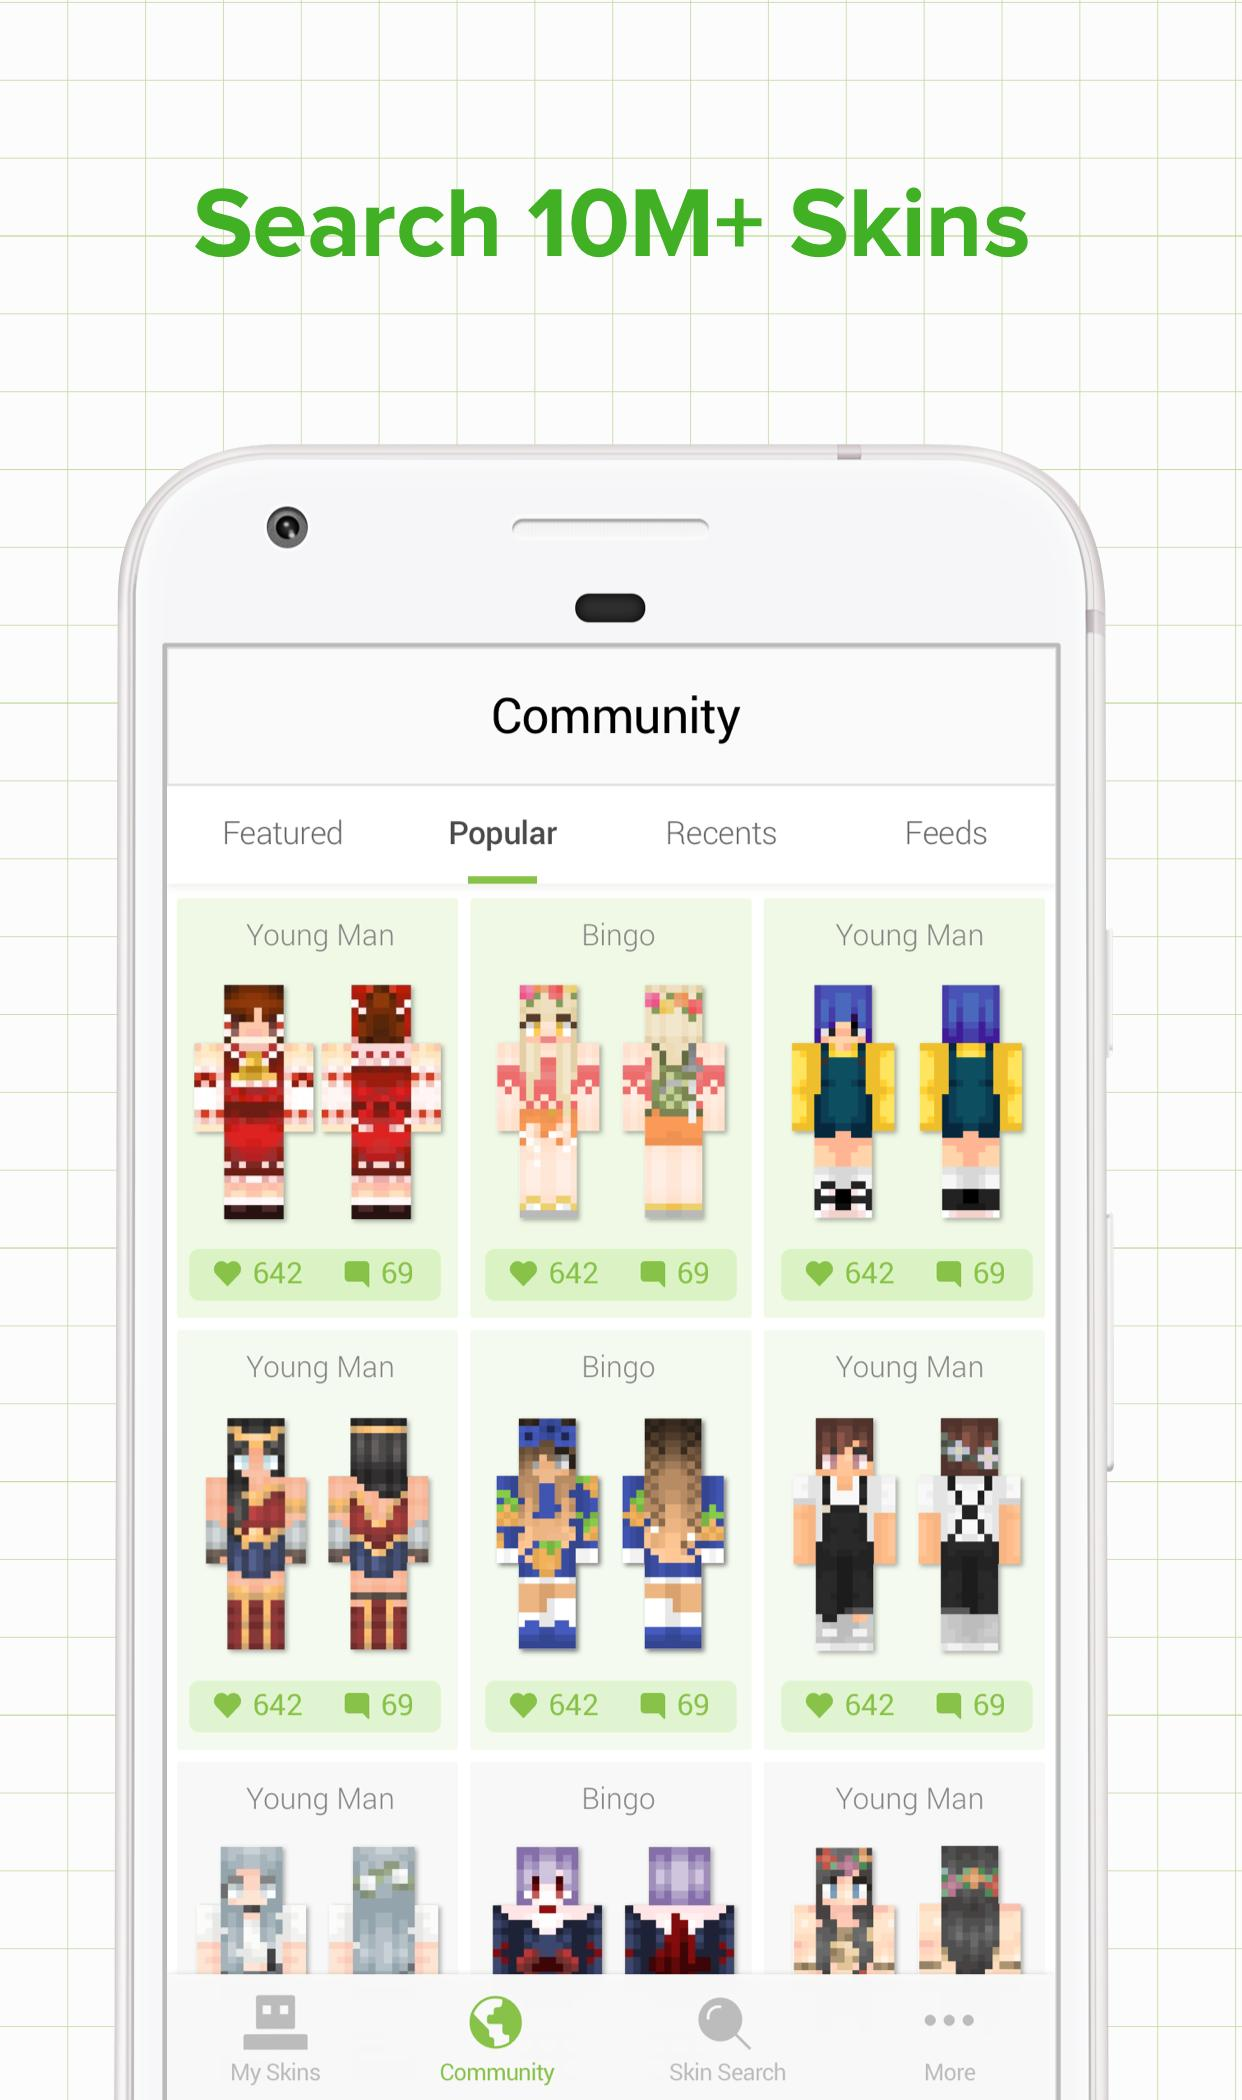 Skinseed for Android - APK Download